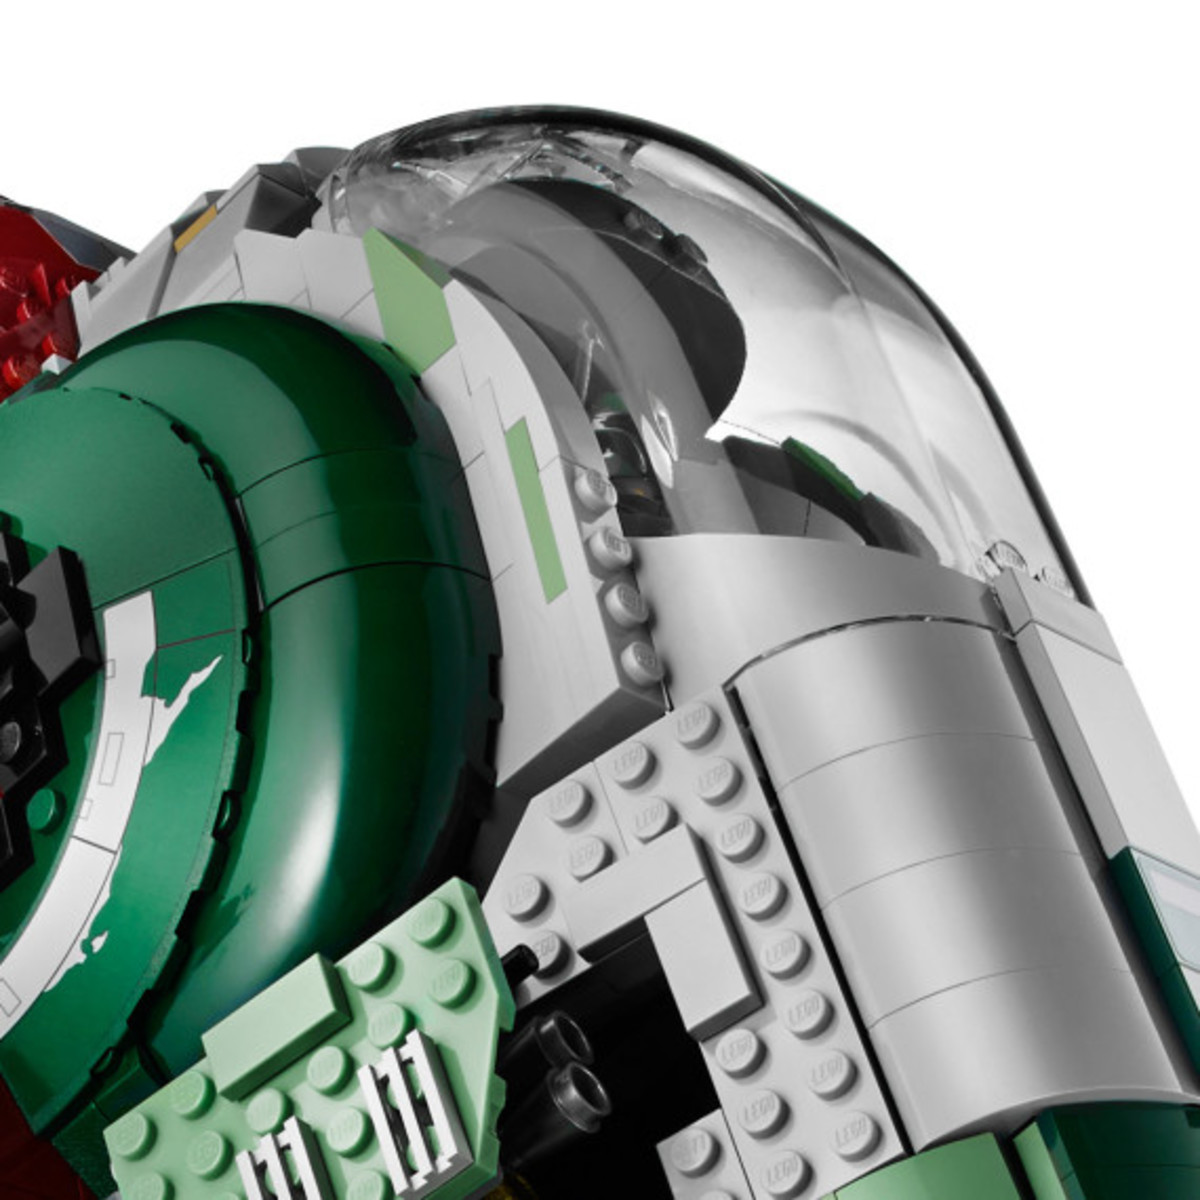 Star Wars x LEGO Ultimate Collector's Series: Boba Fett's Slave I Kit | Release Info - 22